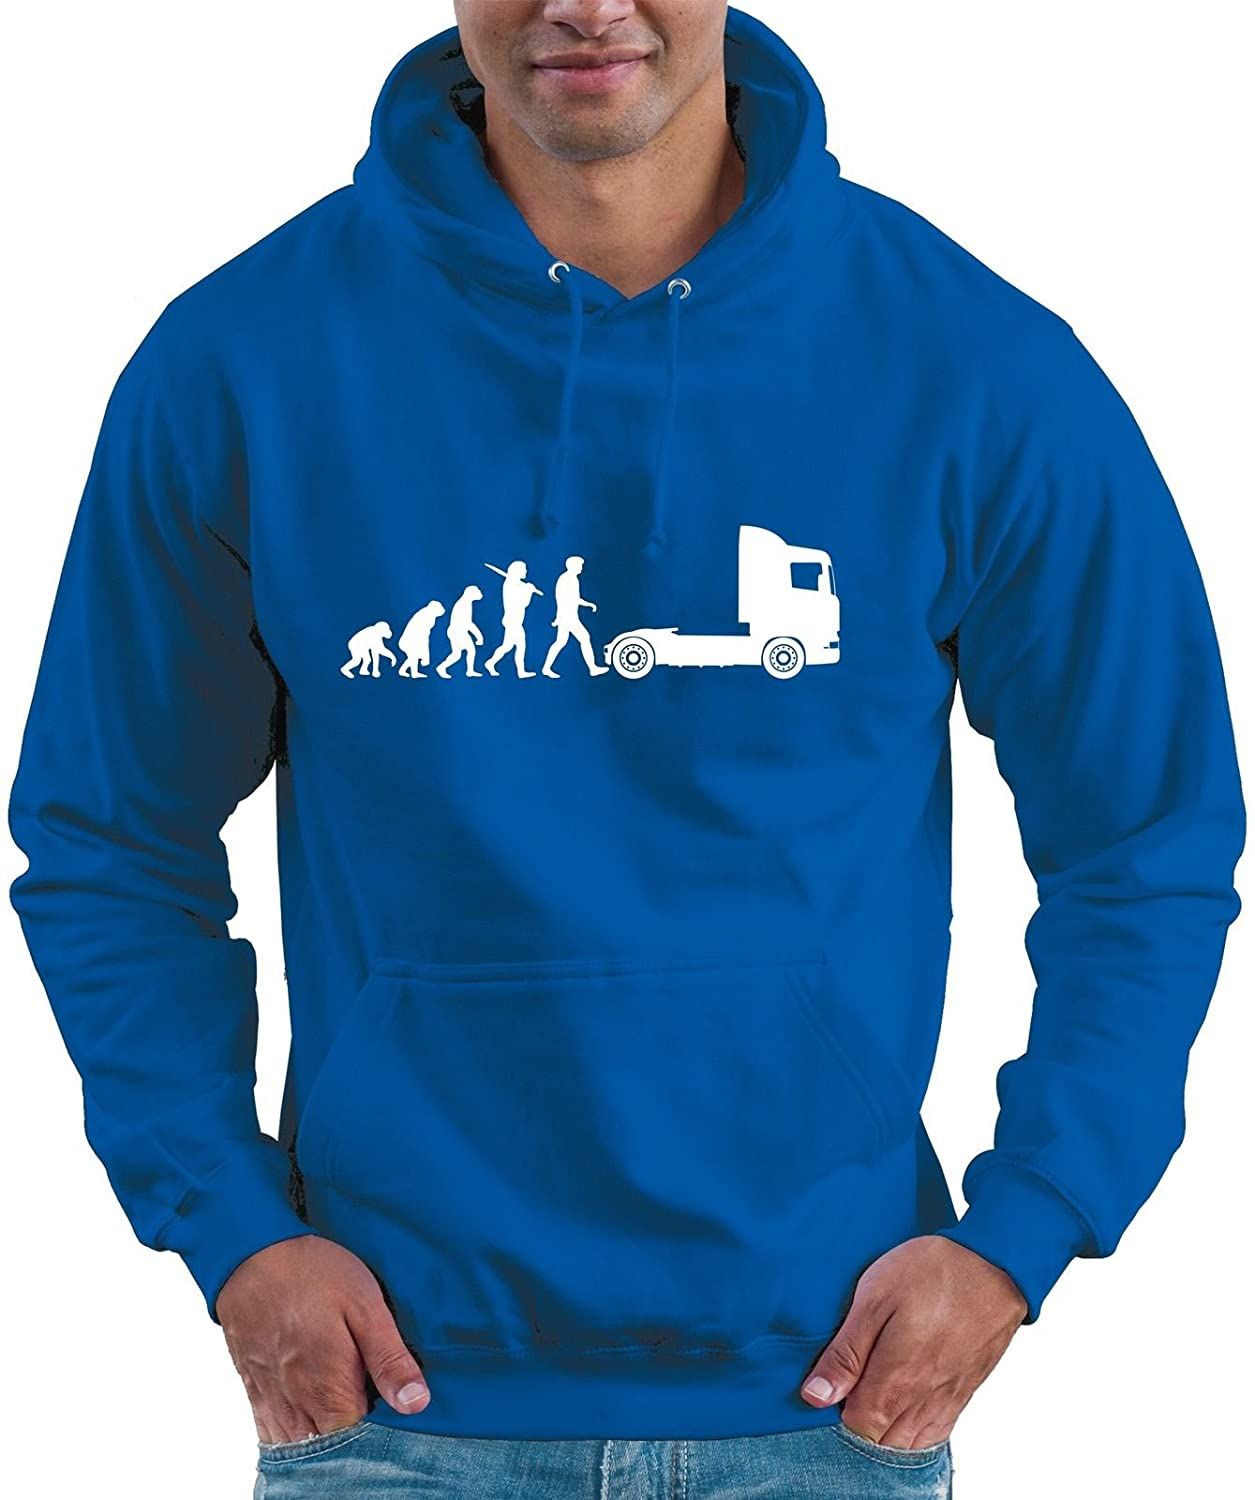 Evolution of Trucker Man Lorry Truck Driver Hoodie Hooded Top